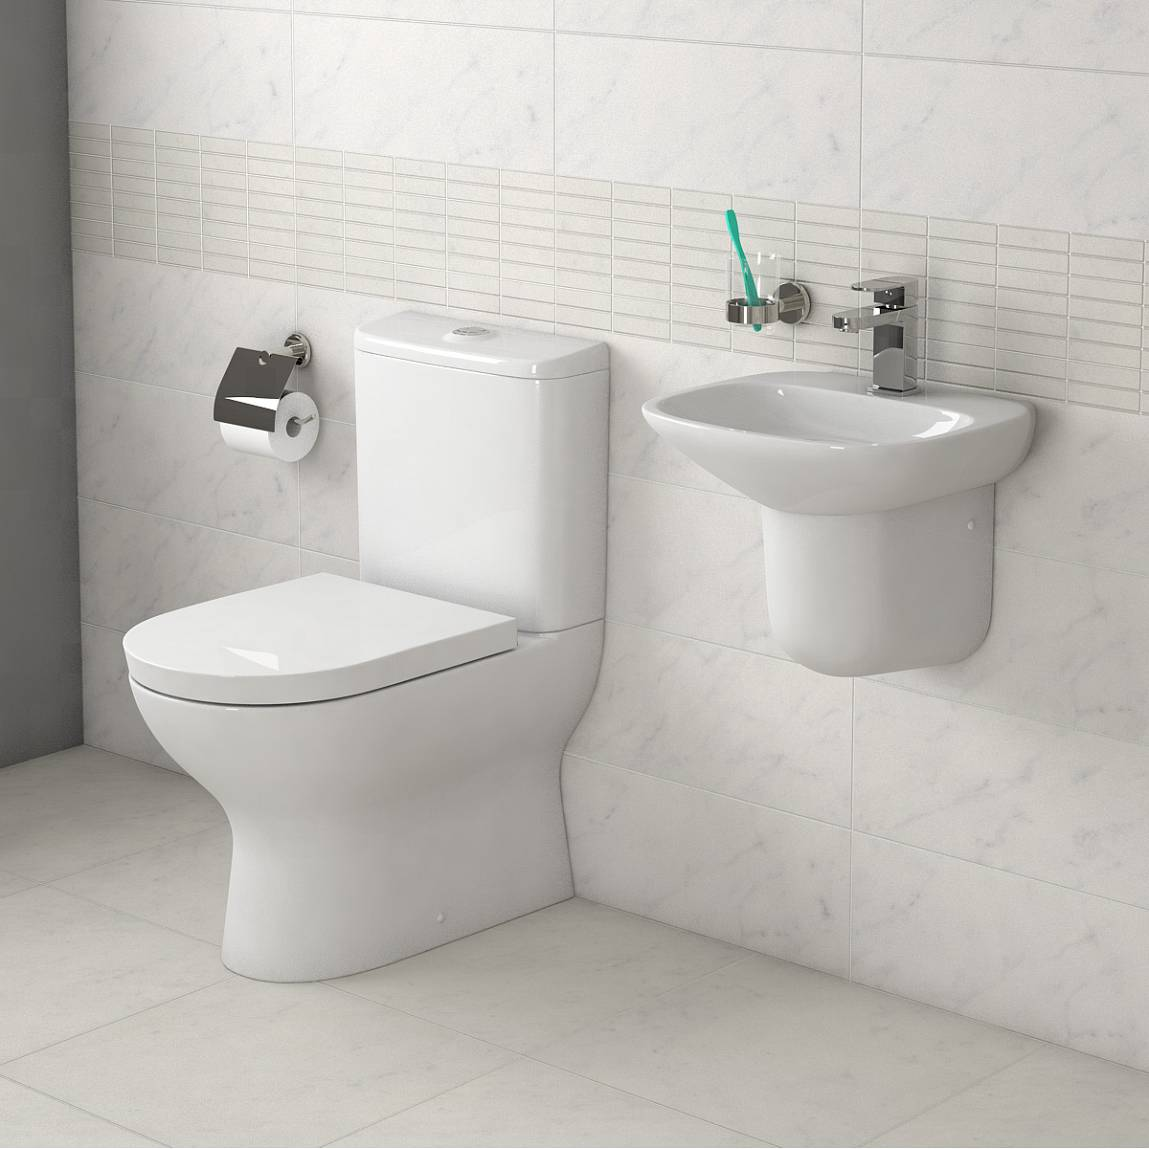 Fairbanks Toilet and basin Suite